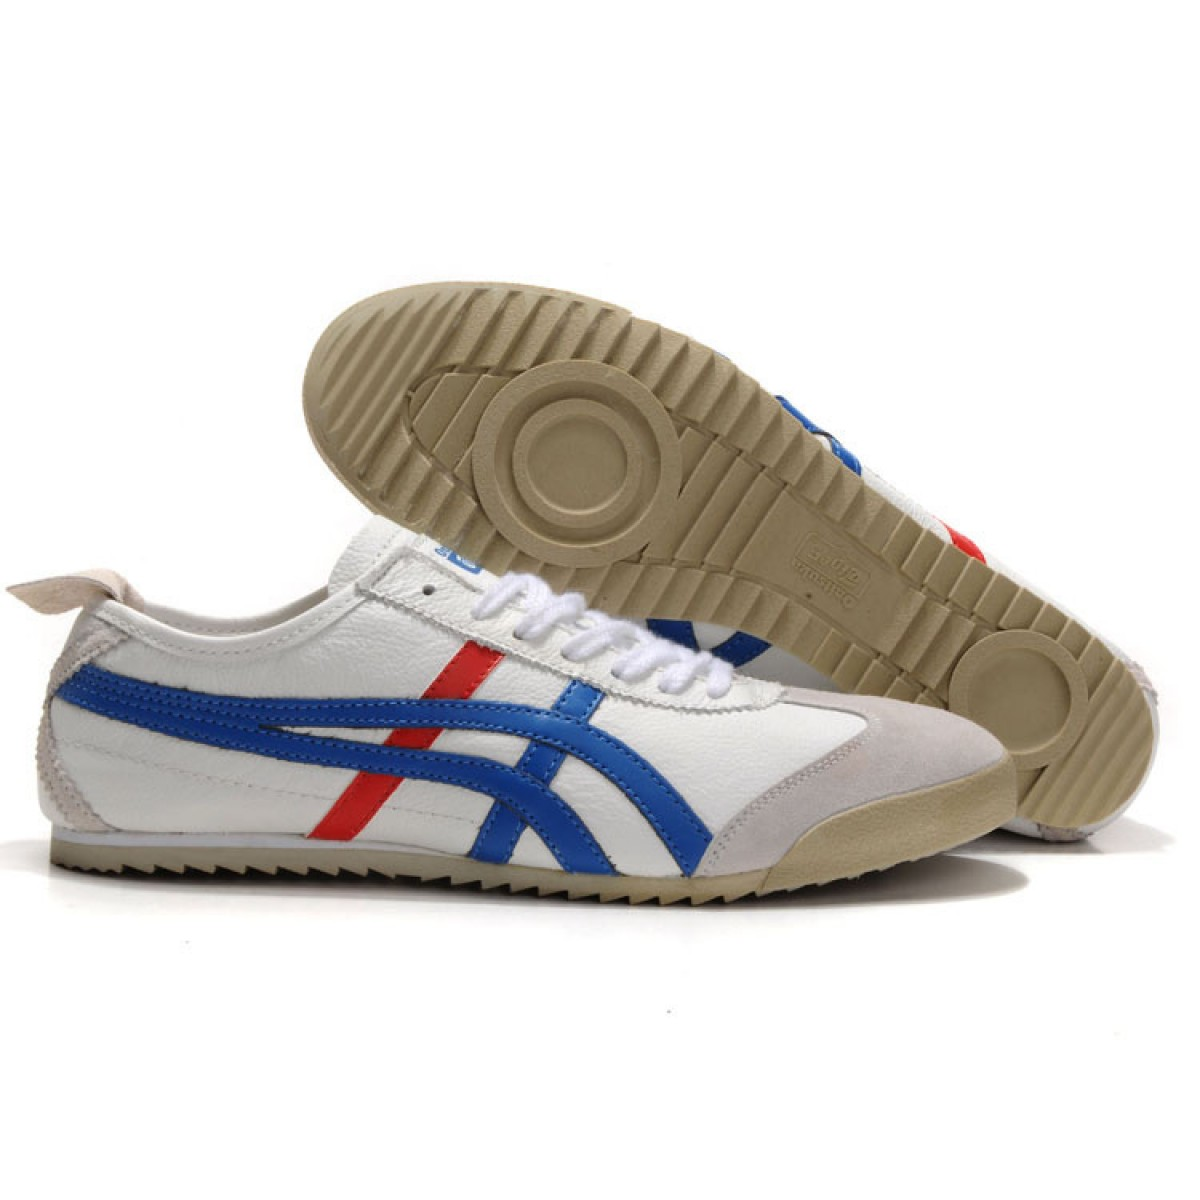 WS9566 2017 Soldes Asics New Style bleu blanc rouge 90221219 Pas Cher